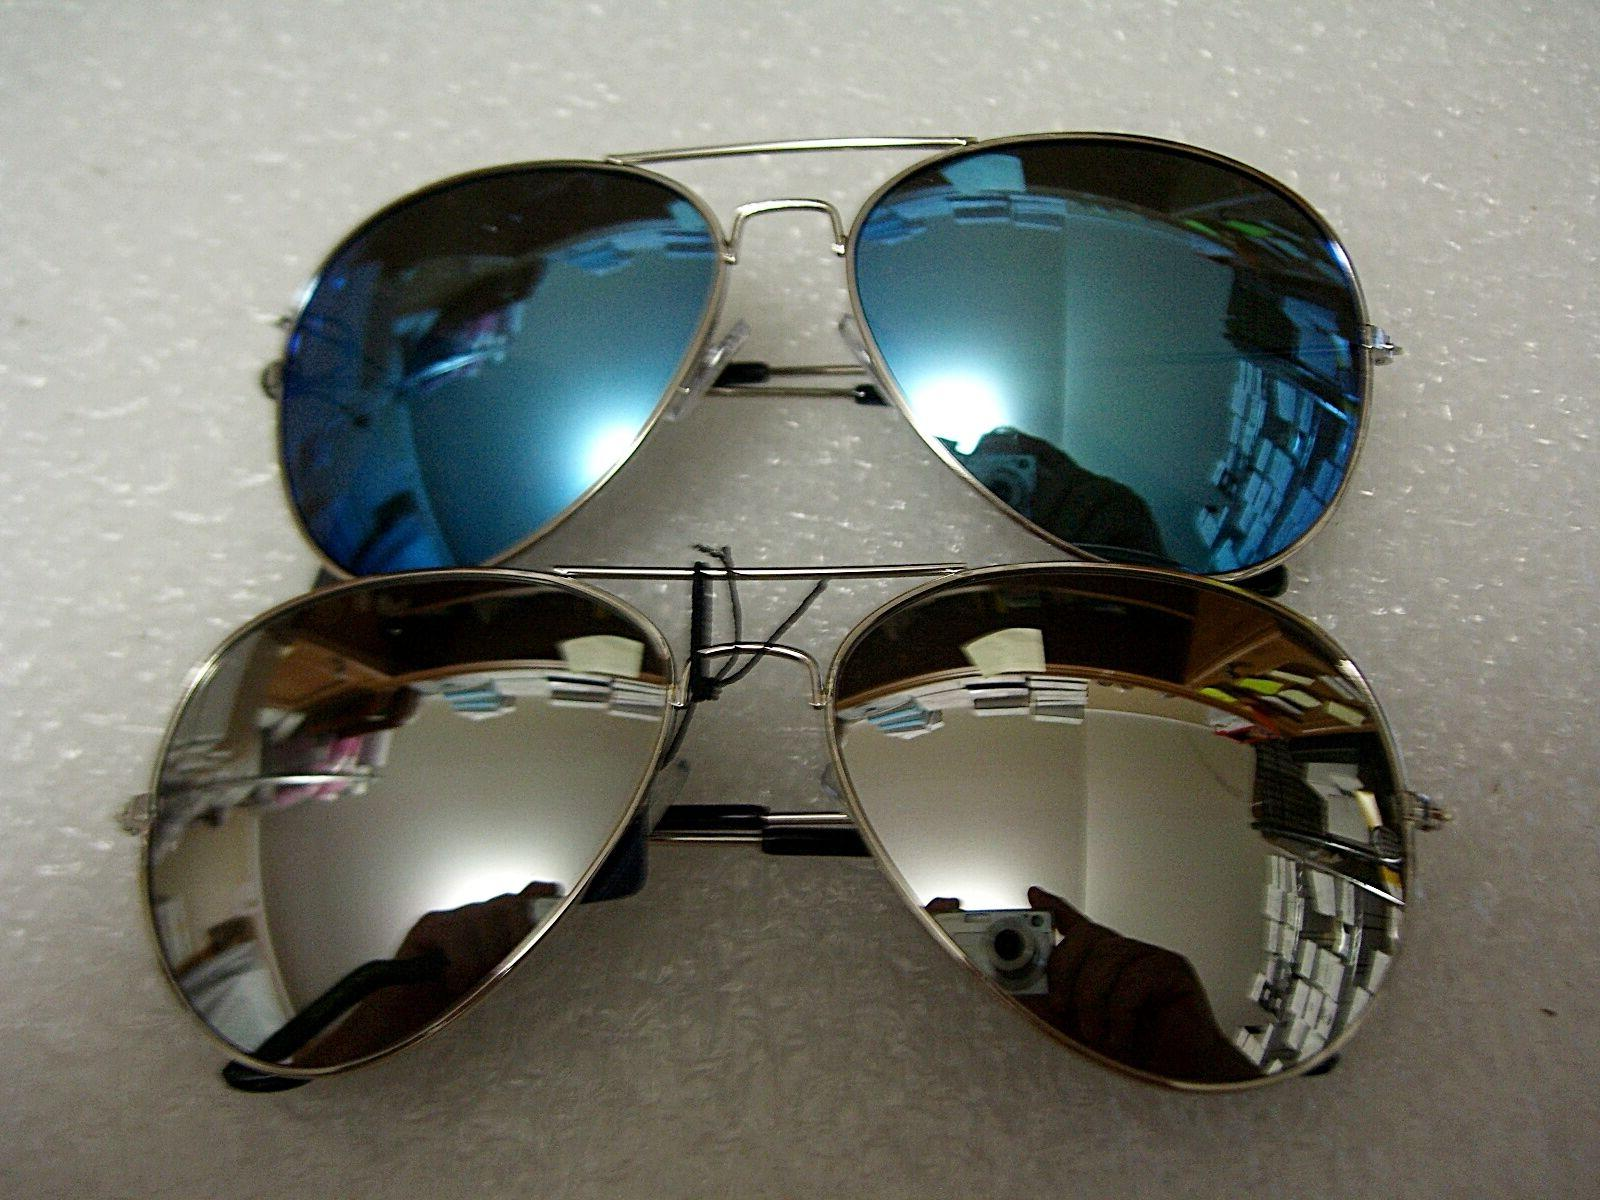 2 PAIR AVIATOR SUNGLASSES  BLUE MIRROR & SILVER MIRROR LENS